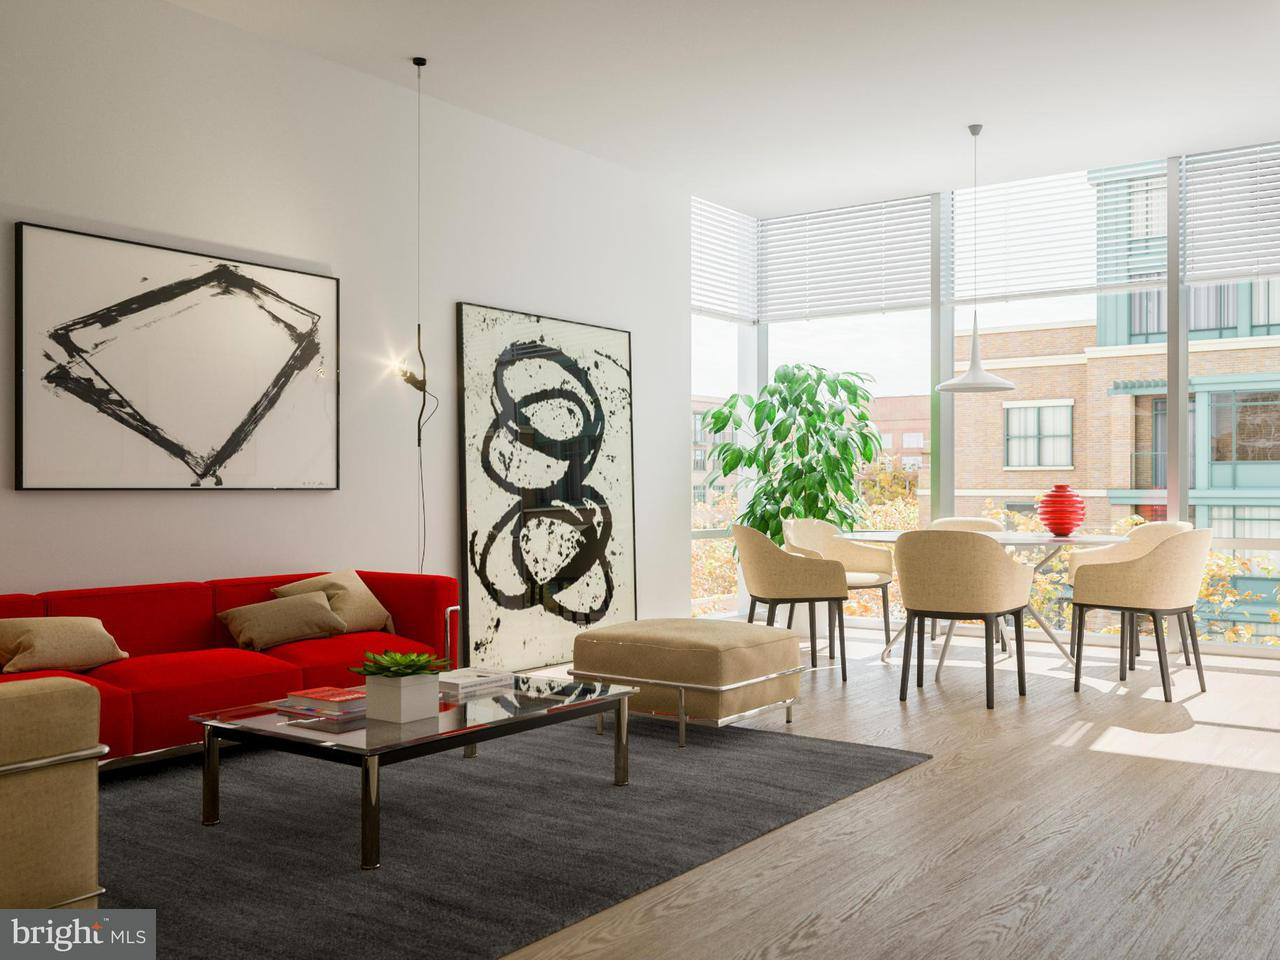 Additional photo for property listing at 1111 24th St Nw #72 1111 24th St Nw #72 Washington, コロンビア特別区 20037 アメリカ合衆国